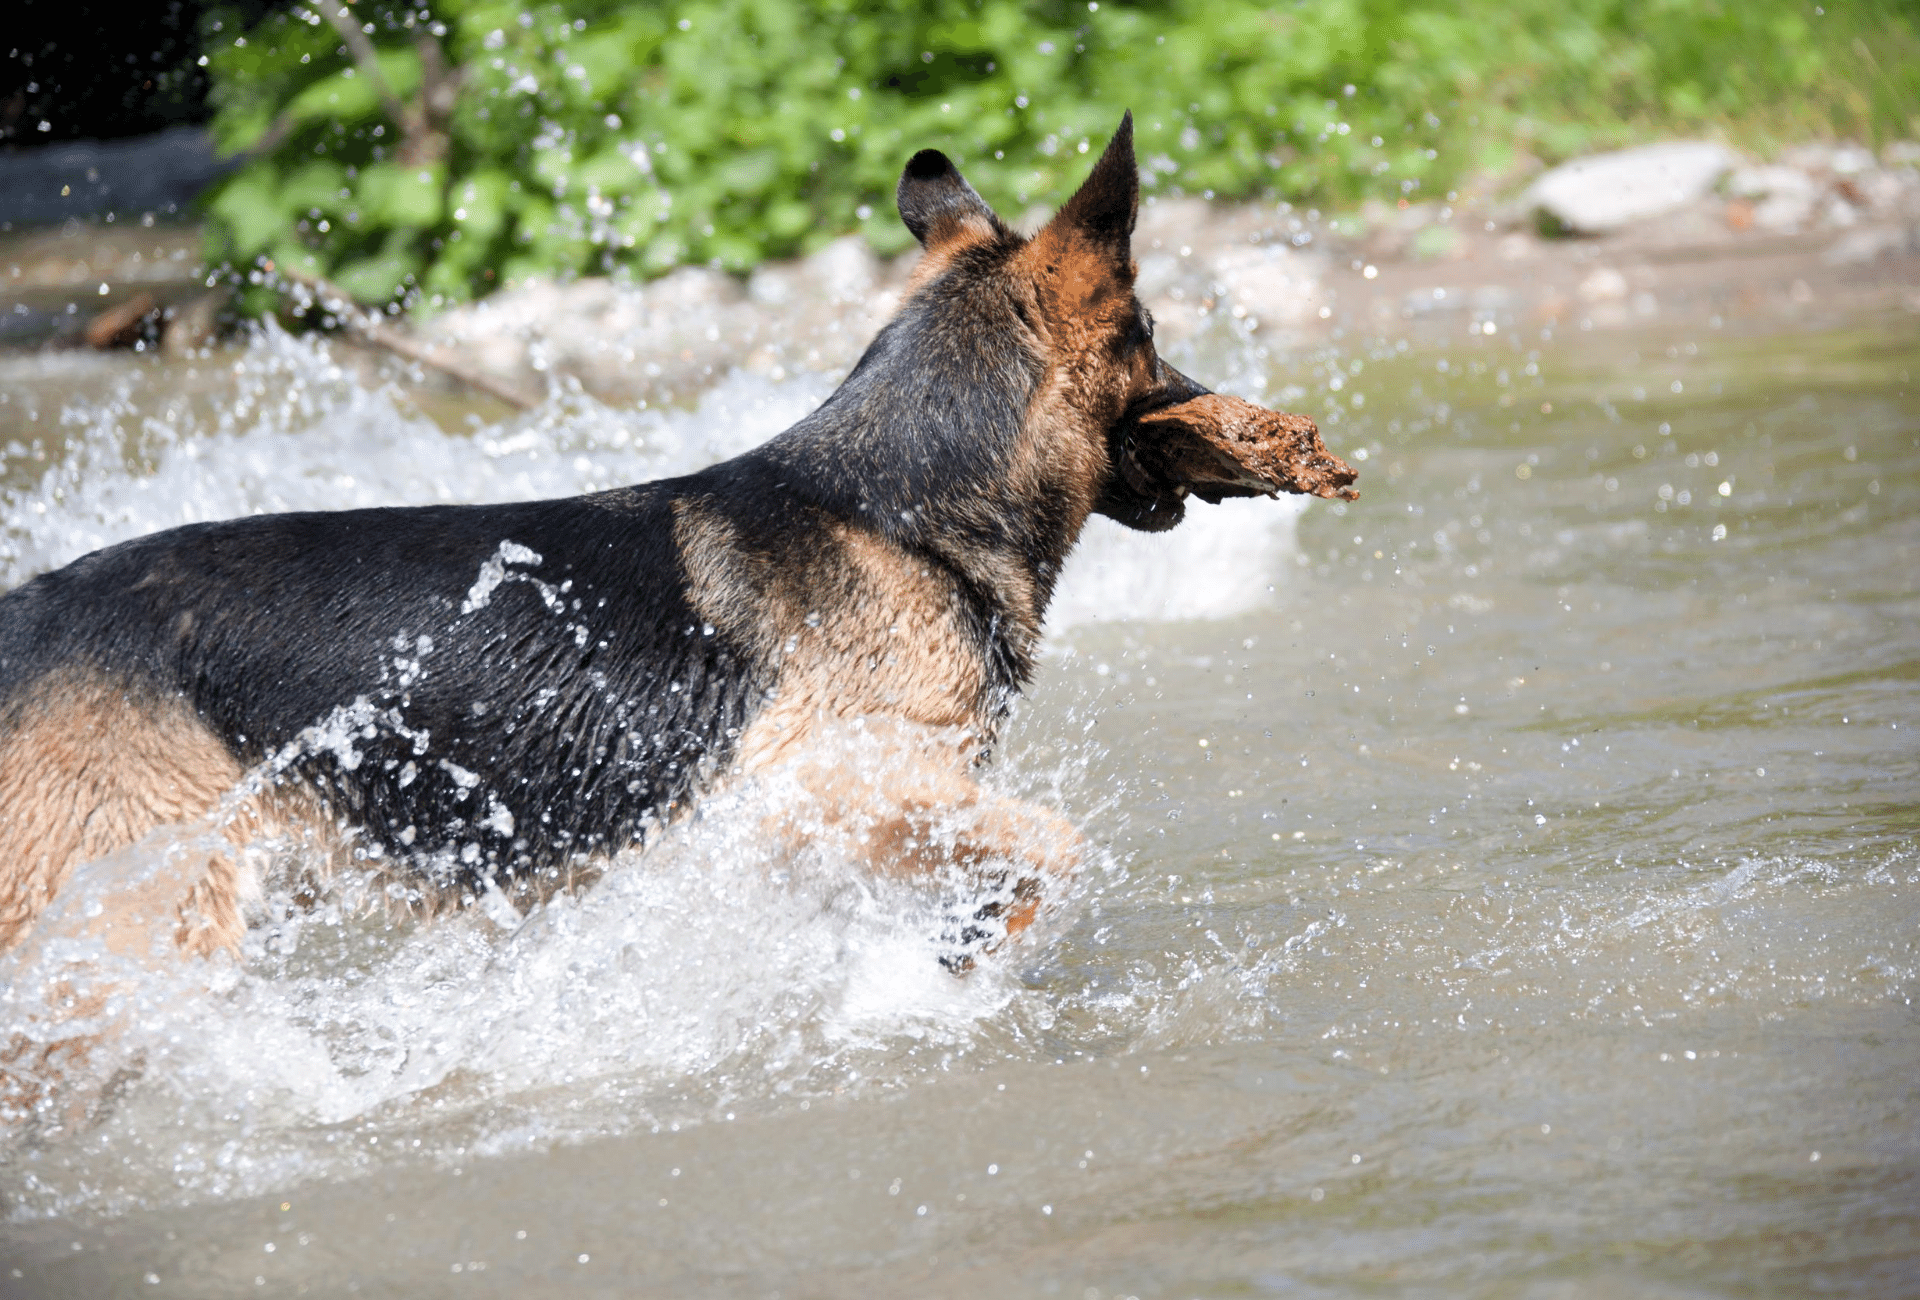 German Shepherd with straight back in the water.